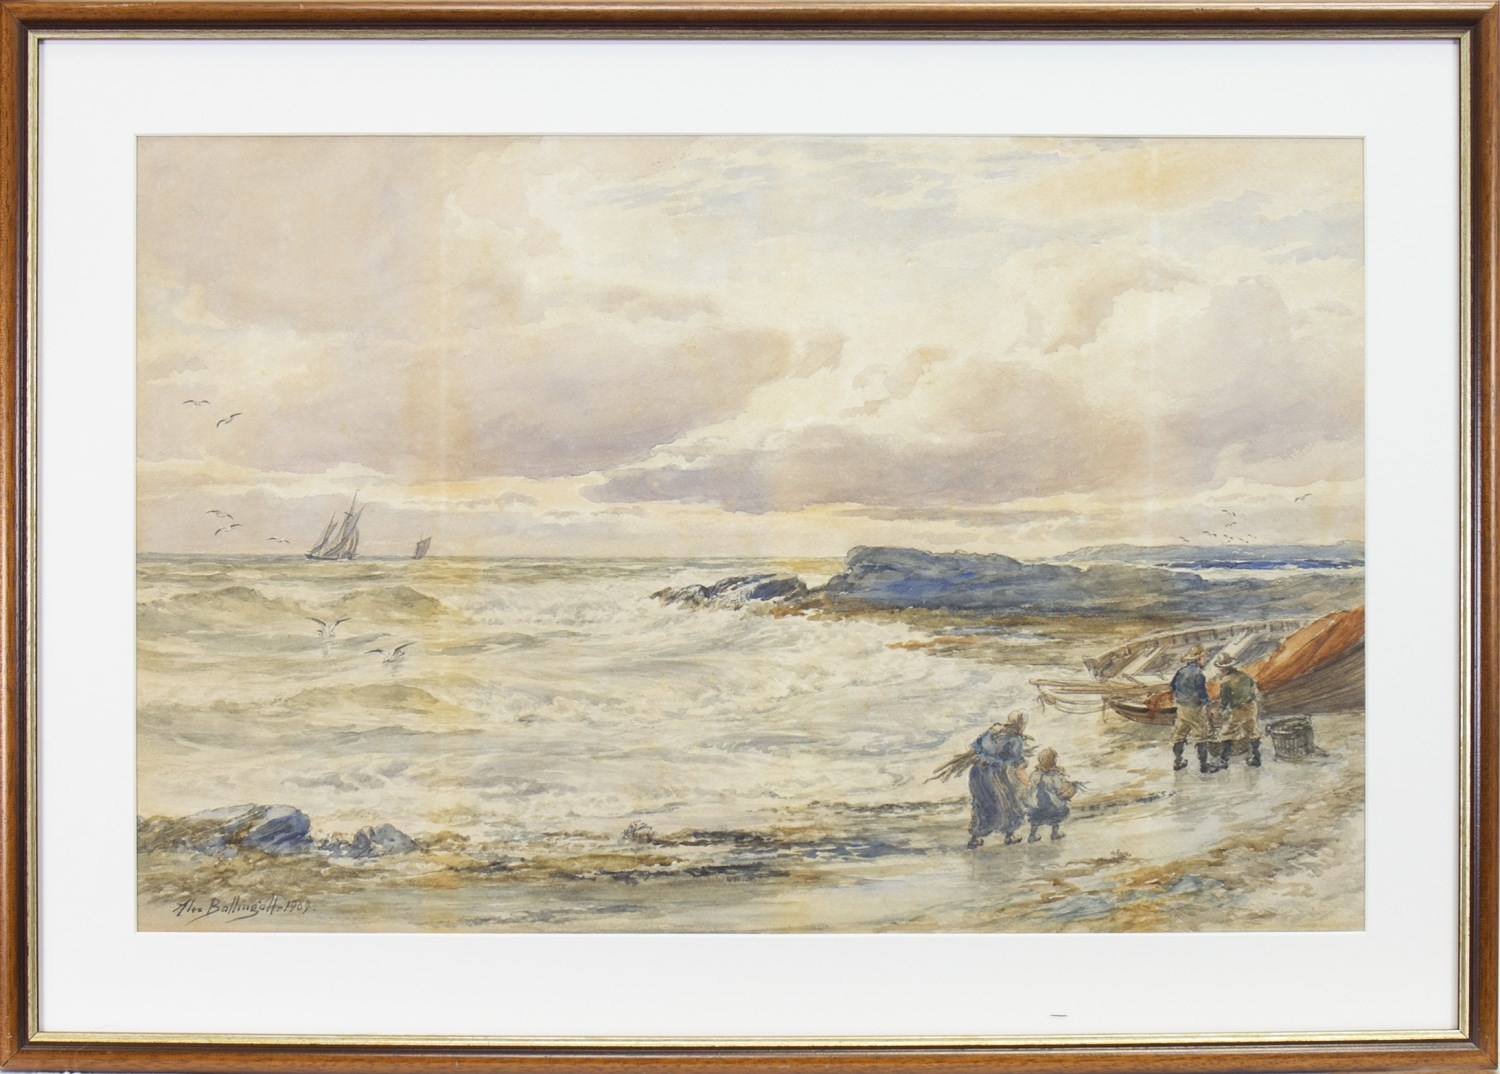 Lot 407 - COASTAL VIEW WITH FIGURES AND BEACHED BOAT TO THE FORE, A WATERCOLOUR BY ALEXANDER BALLINGALL